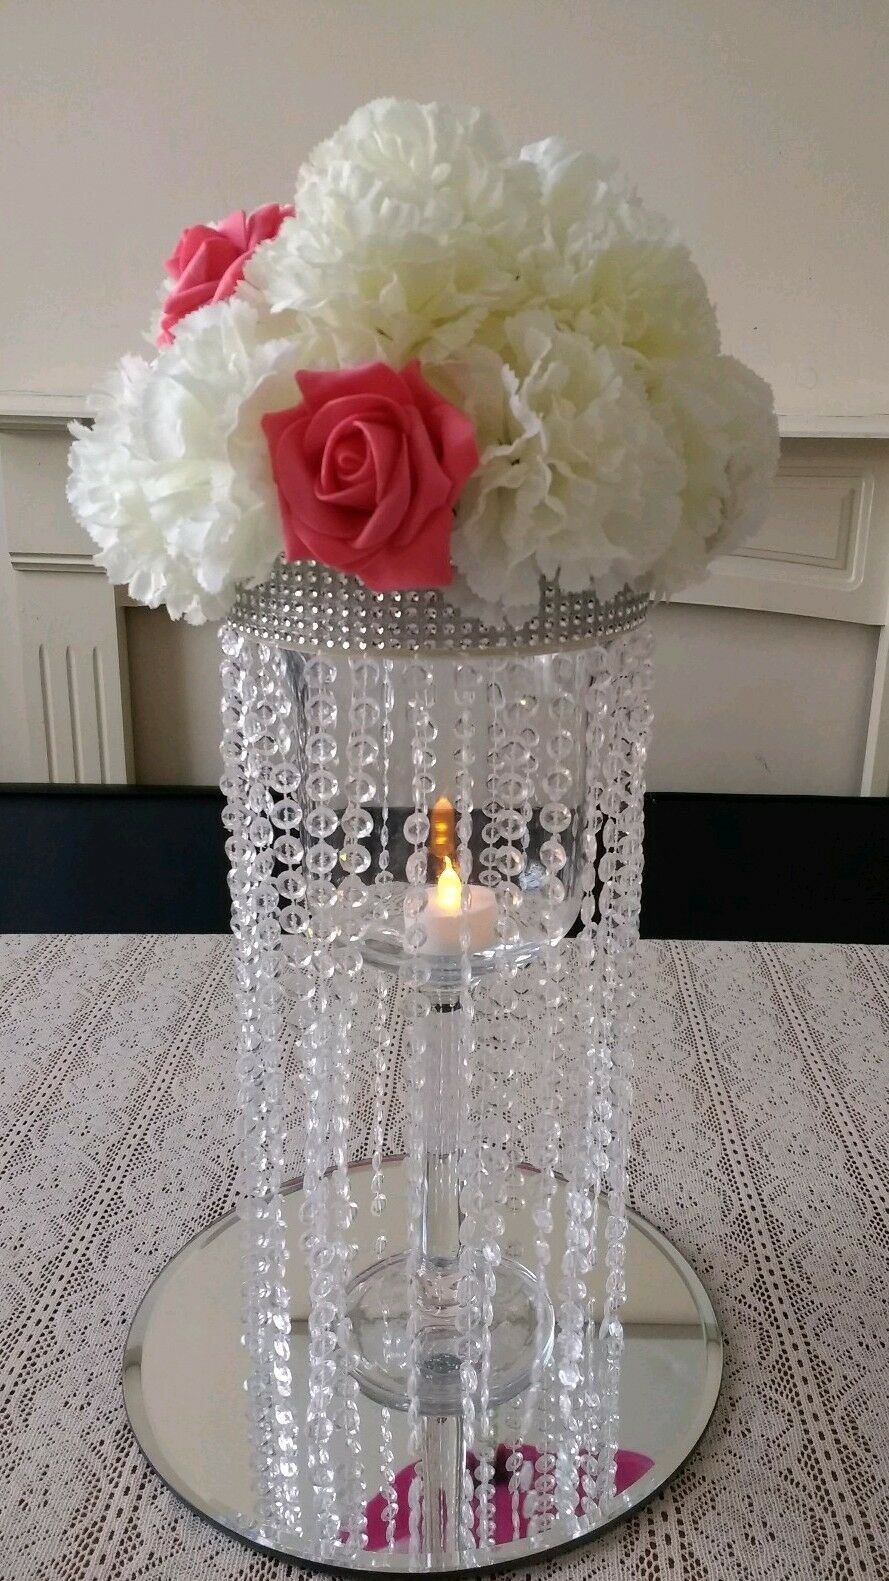 5 Used Chandelier Centrepiece Weiß and Coral Flower for Sale. Great Condition.